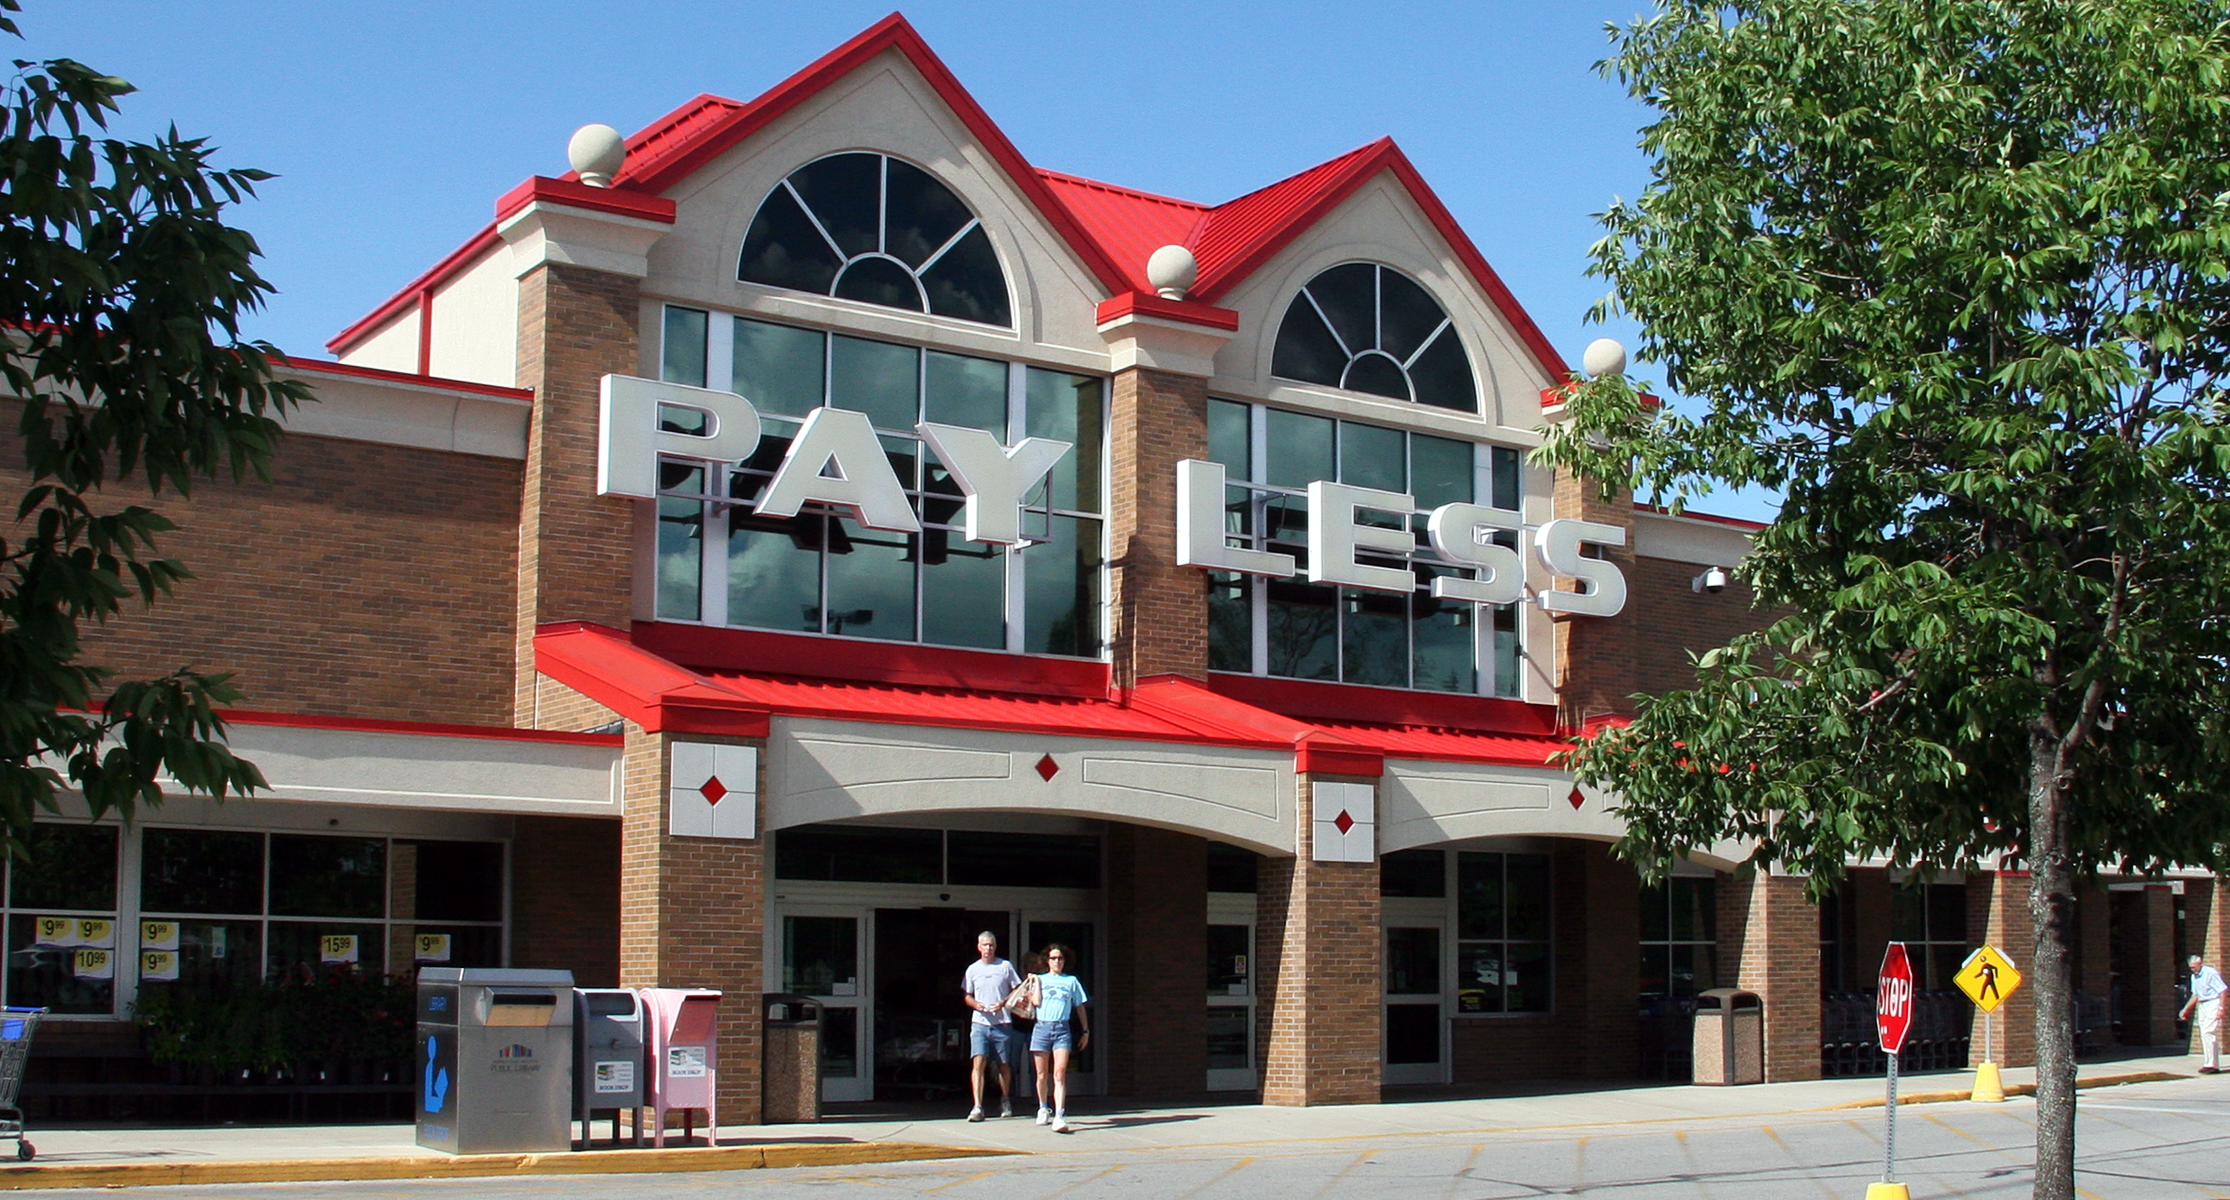 File:Payless, West Lafayette, Indiana.png - Wikimedia Commons